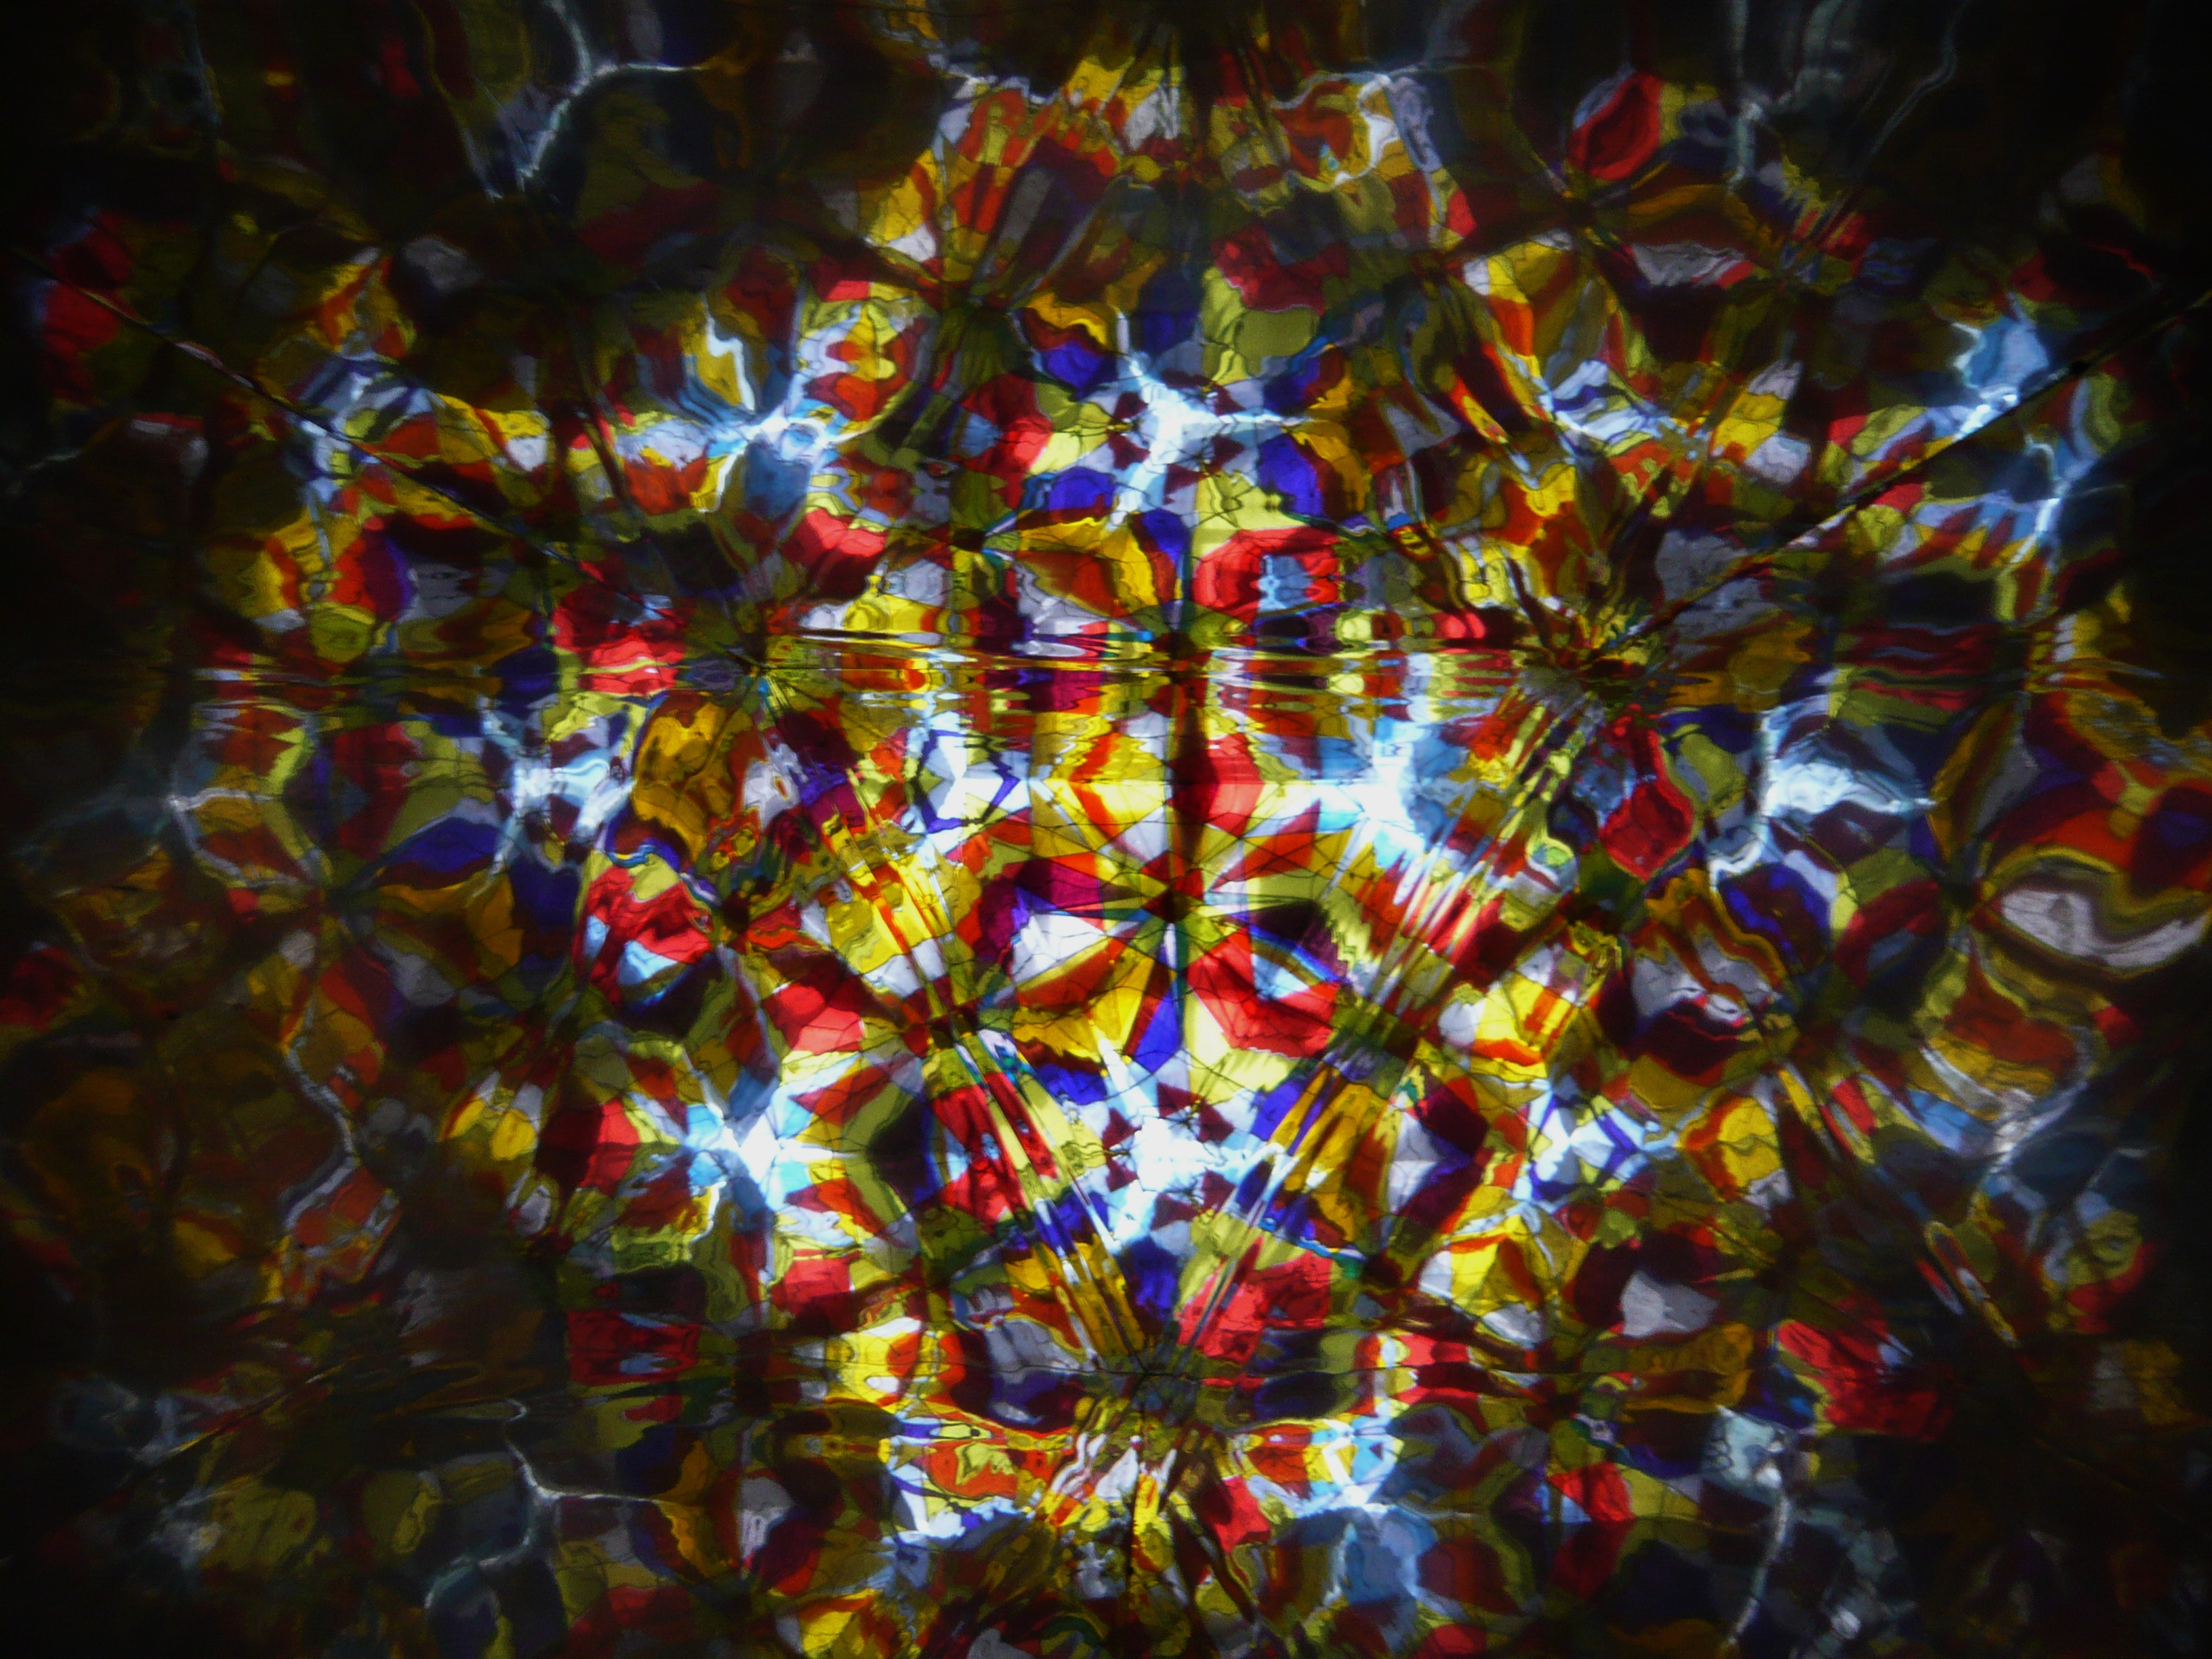 File:Kaleidoscope 2.JPG - Wikimedia Commons